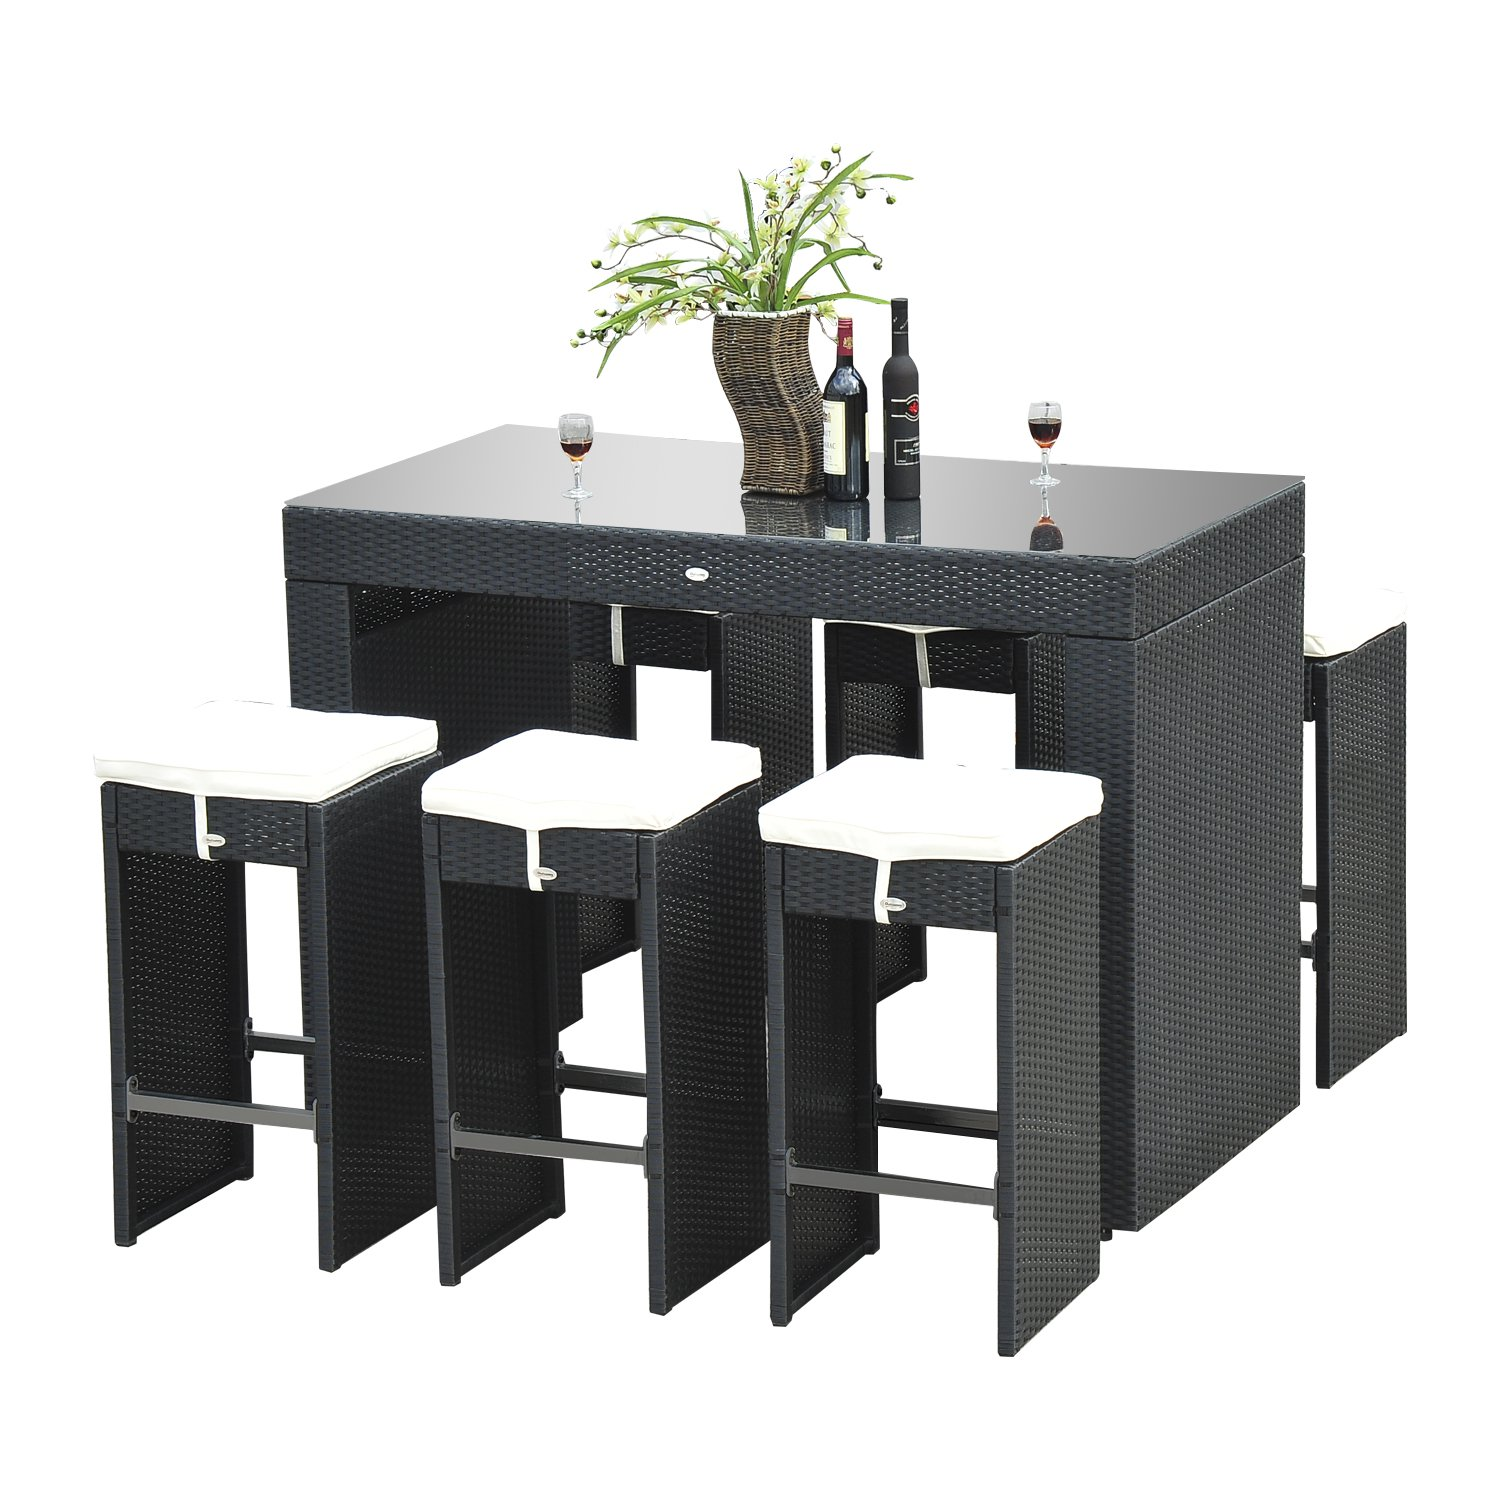 Outsunny 7pc Rattan Wicker Bar Stool Dining Table Set - Black  sc 1 st  Walmart & Outsunny 7pc Rattan Wicker Bar Stool Dining Table Set - Black ...